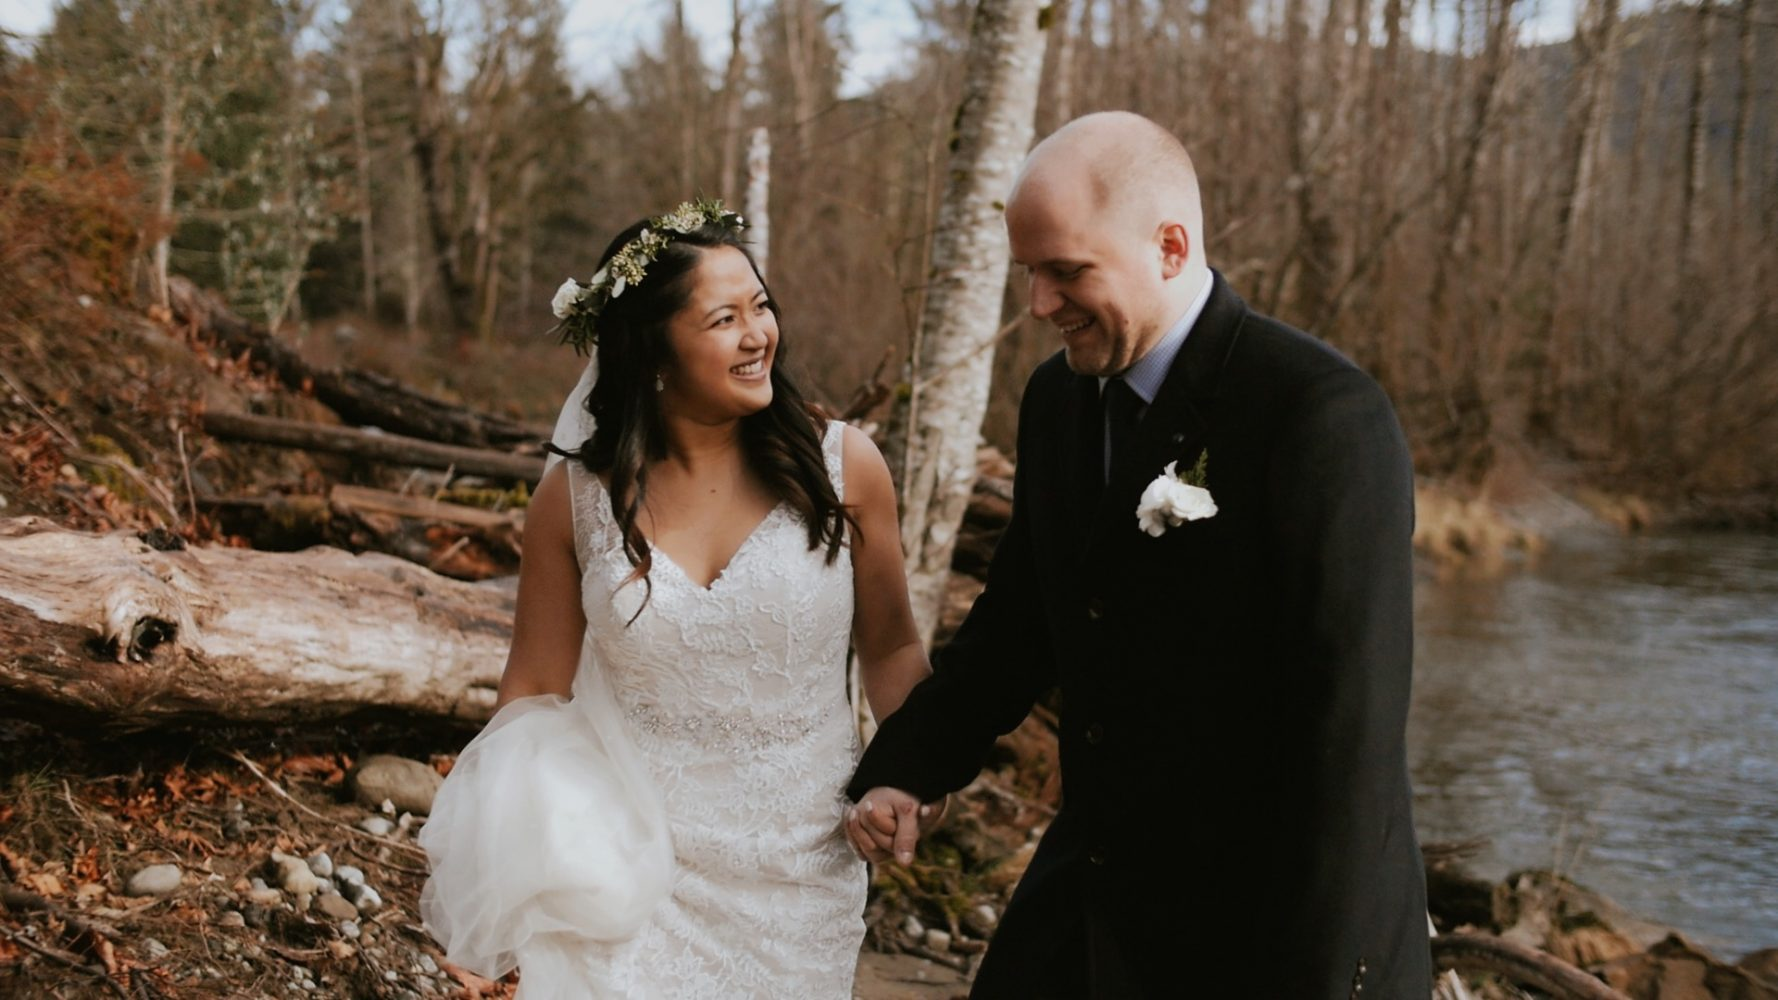 Raelene + John | Snoqualmie, Washington